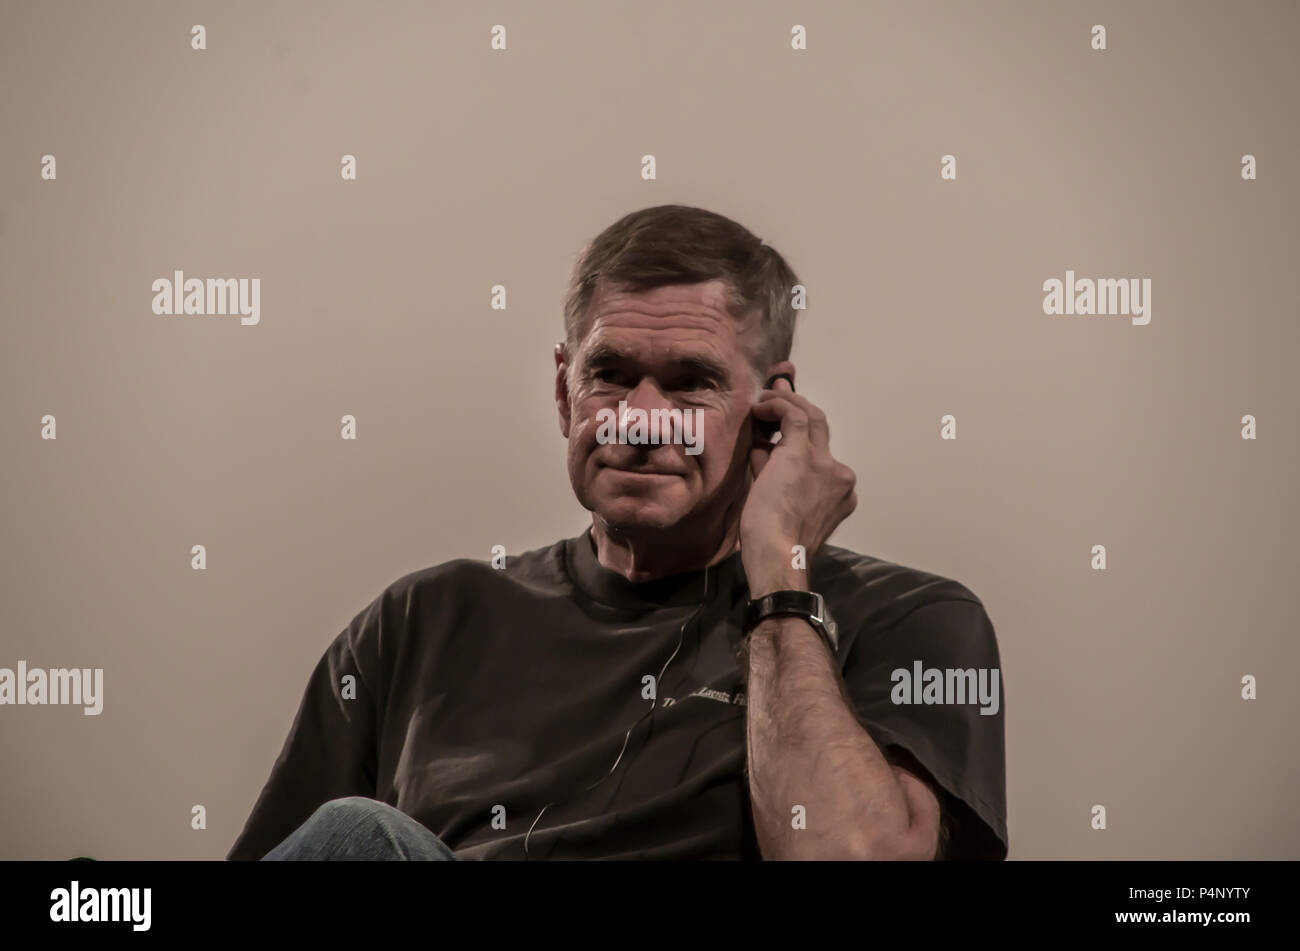 "Madrid, Spain. 22nd June 2018. Film director Gus Van Sant, who is visiting Madrid for the premiere of his latest movie ""Don't Worry, He Won't Get Far on Foot"", gave a conference at the Spanish Film Archive after a projection of ""Elephant"" as part of a cicle about his filmography. Credit: Lora Grigorova/Alamy Live News - Stock Image"